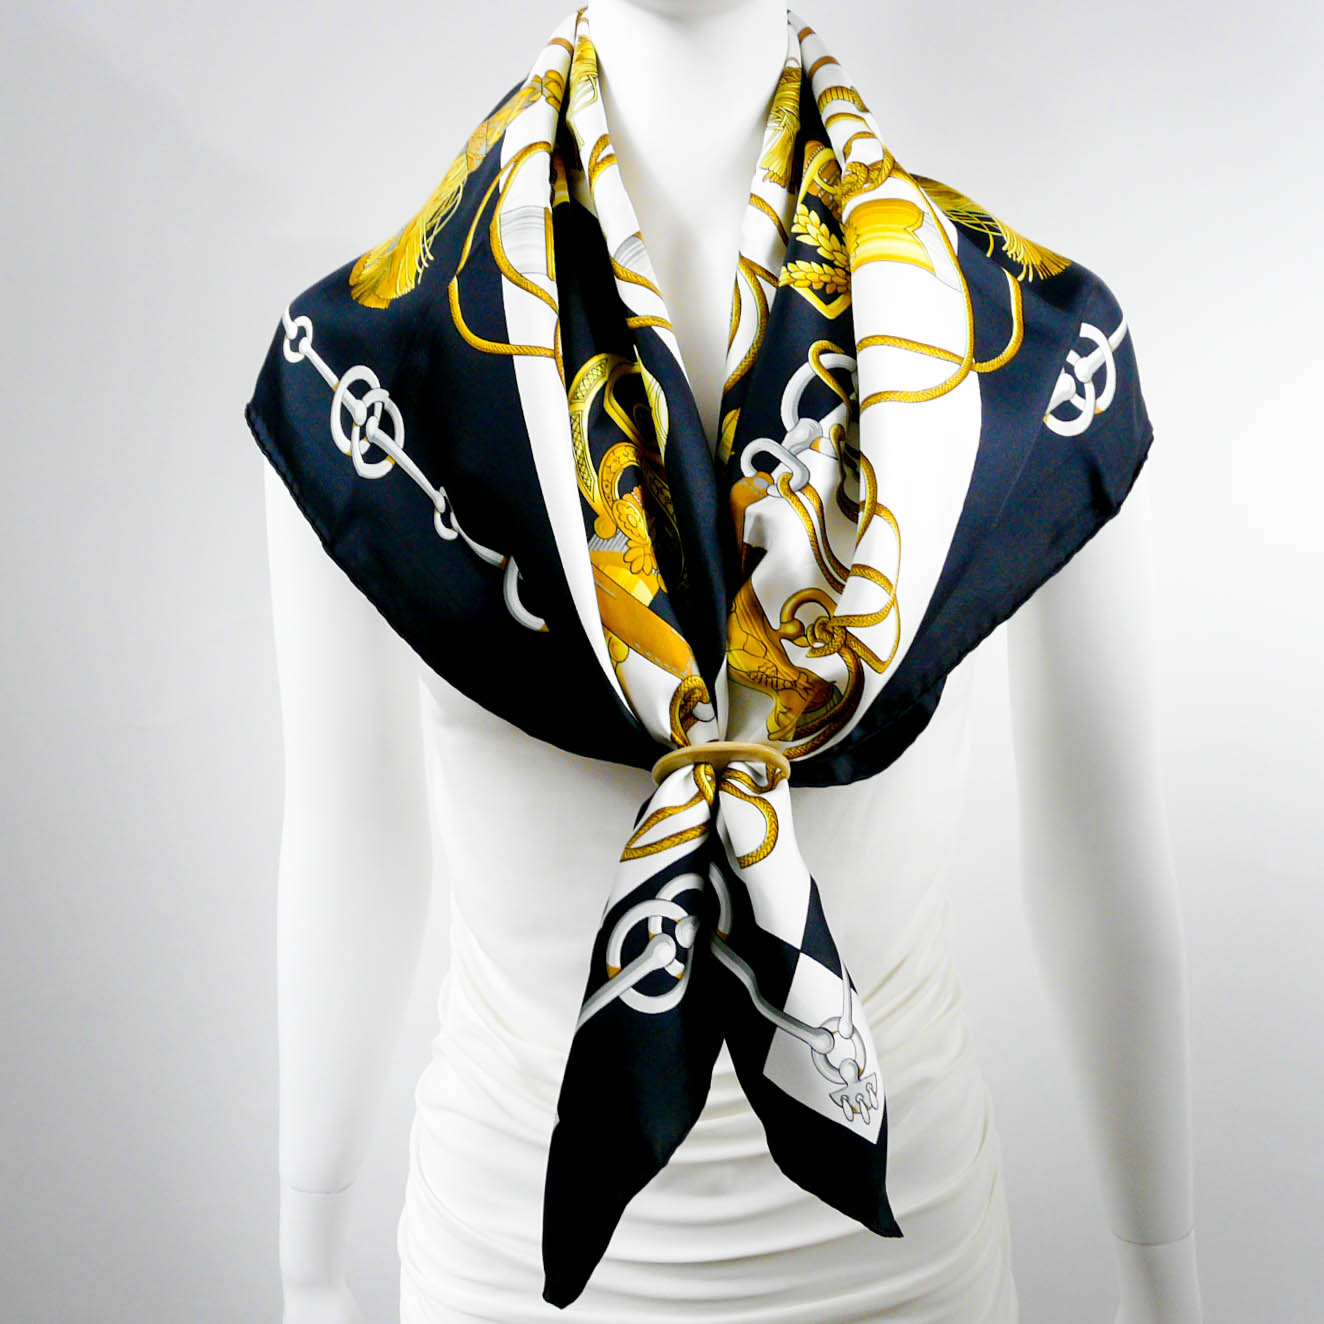 cliquetis-hermes-silk-scarf-by-cdp-4